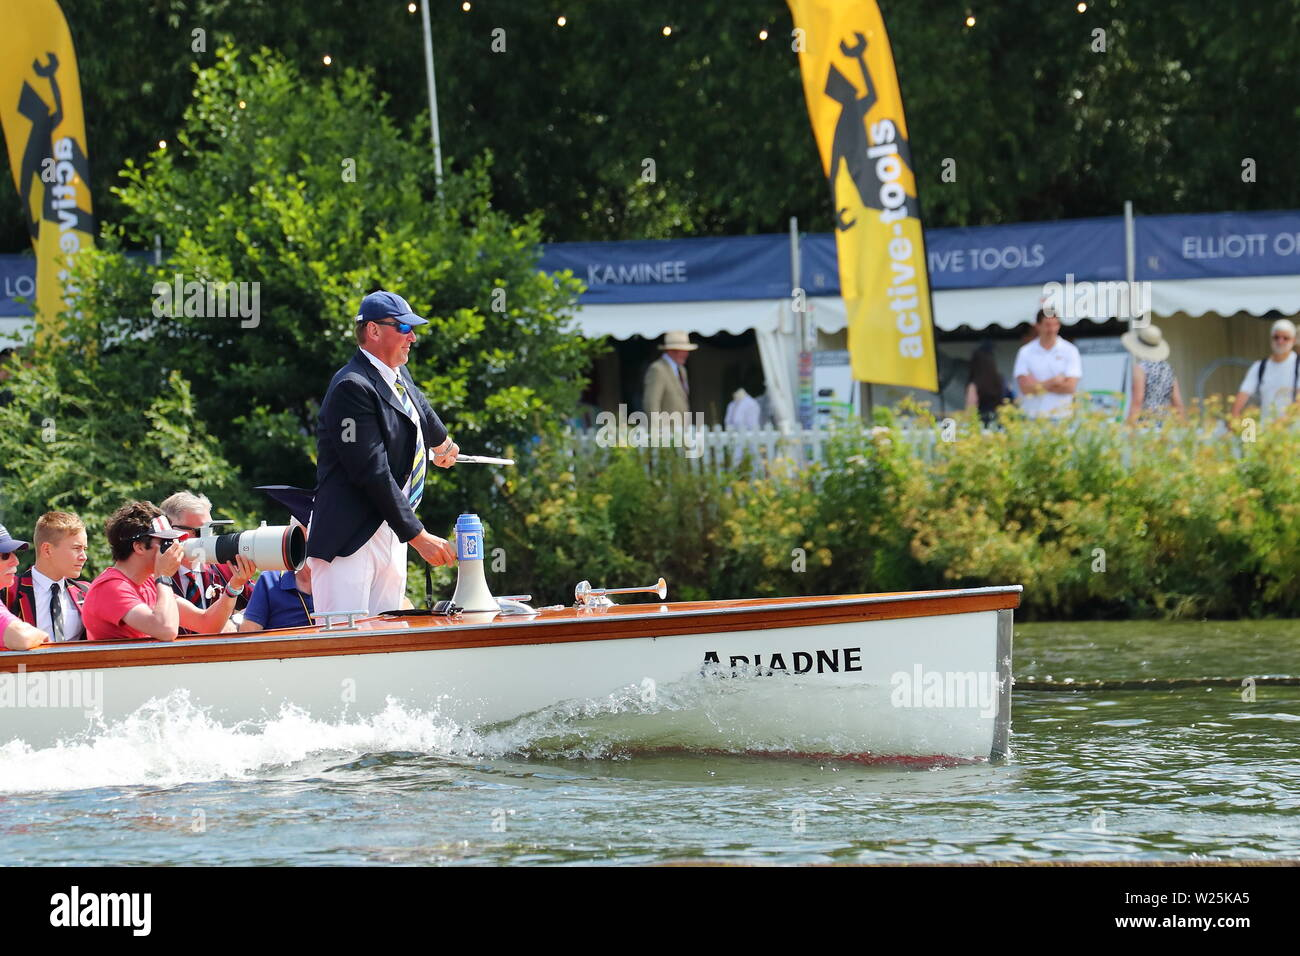 The Umpire boat with Sir Matthew Pinsent as umpire follows the competitors at speed at Henley Royal Regatta, Henley-on-Thames, UK Stock Photo